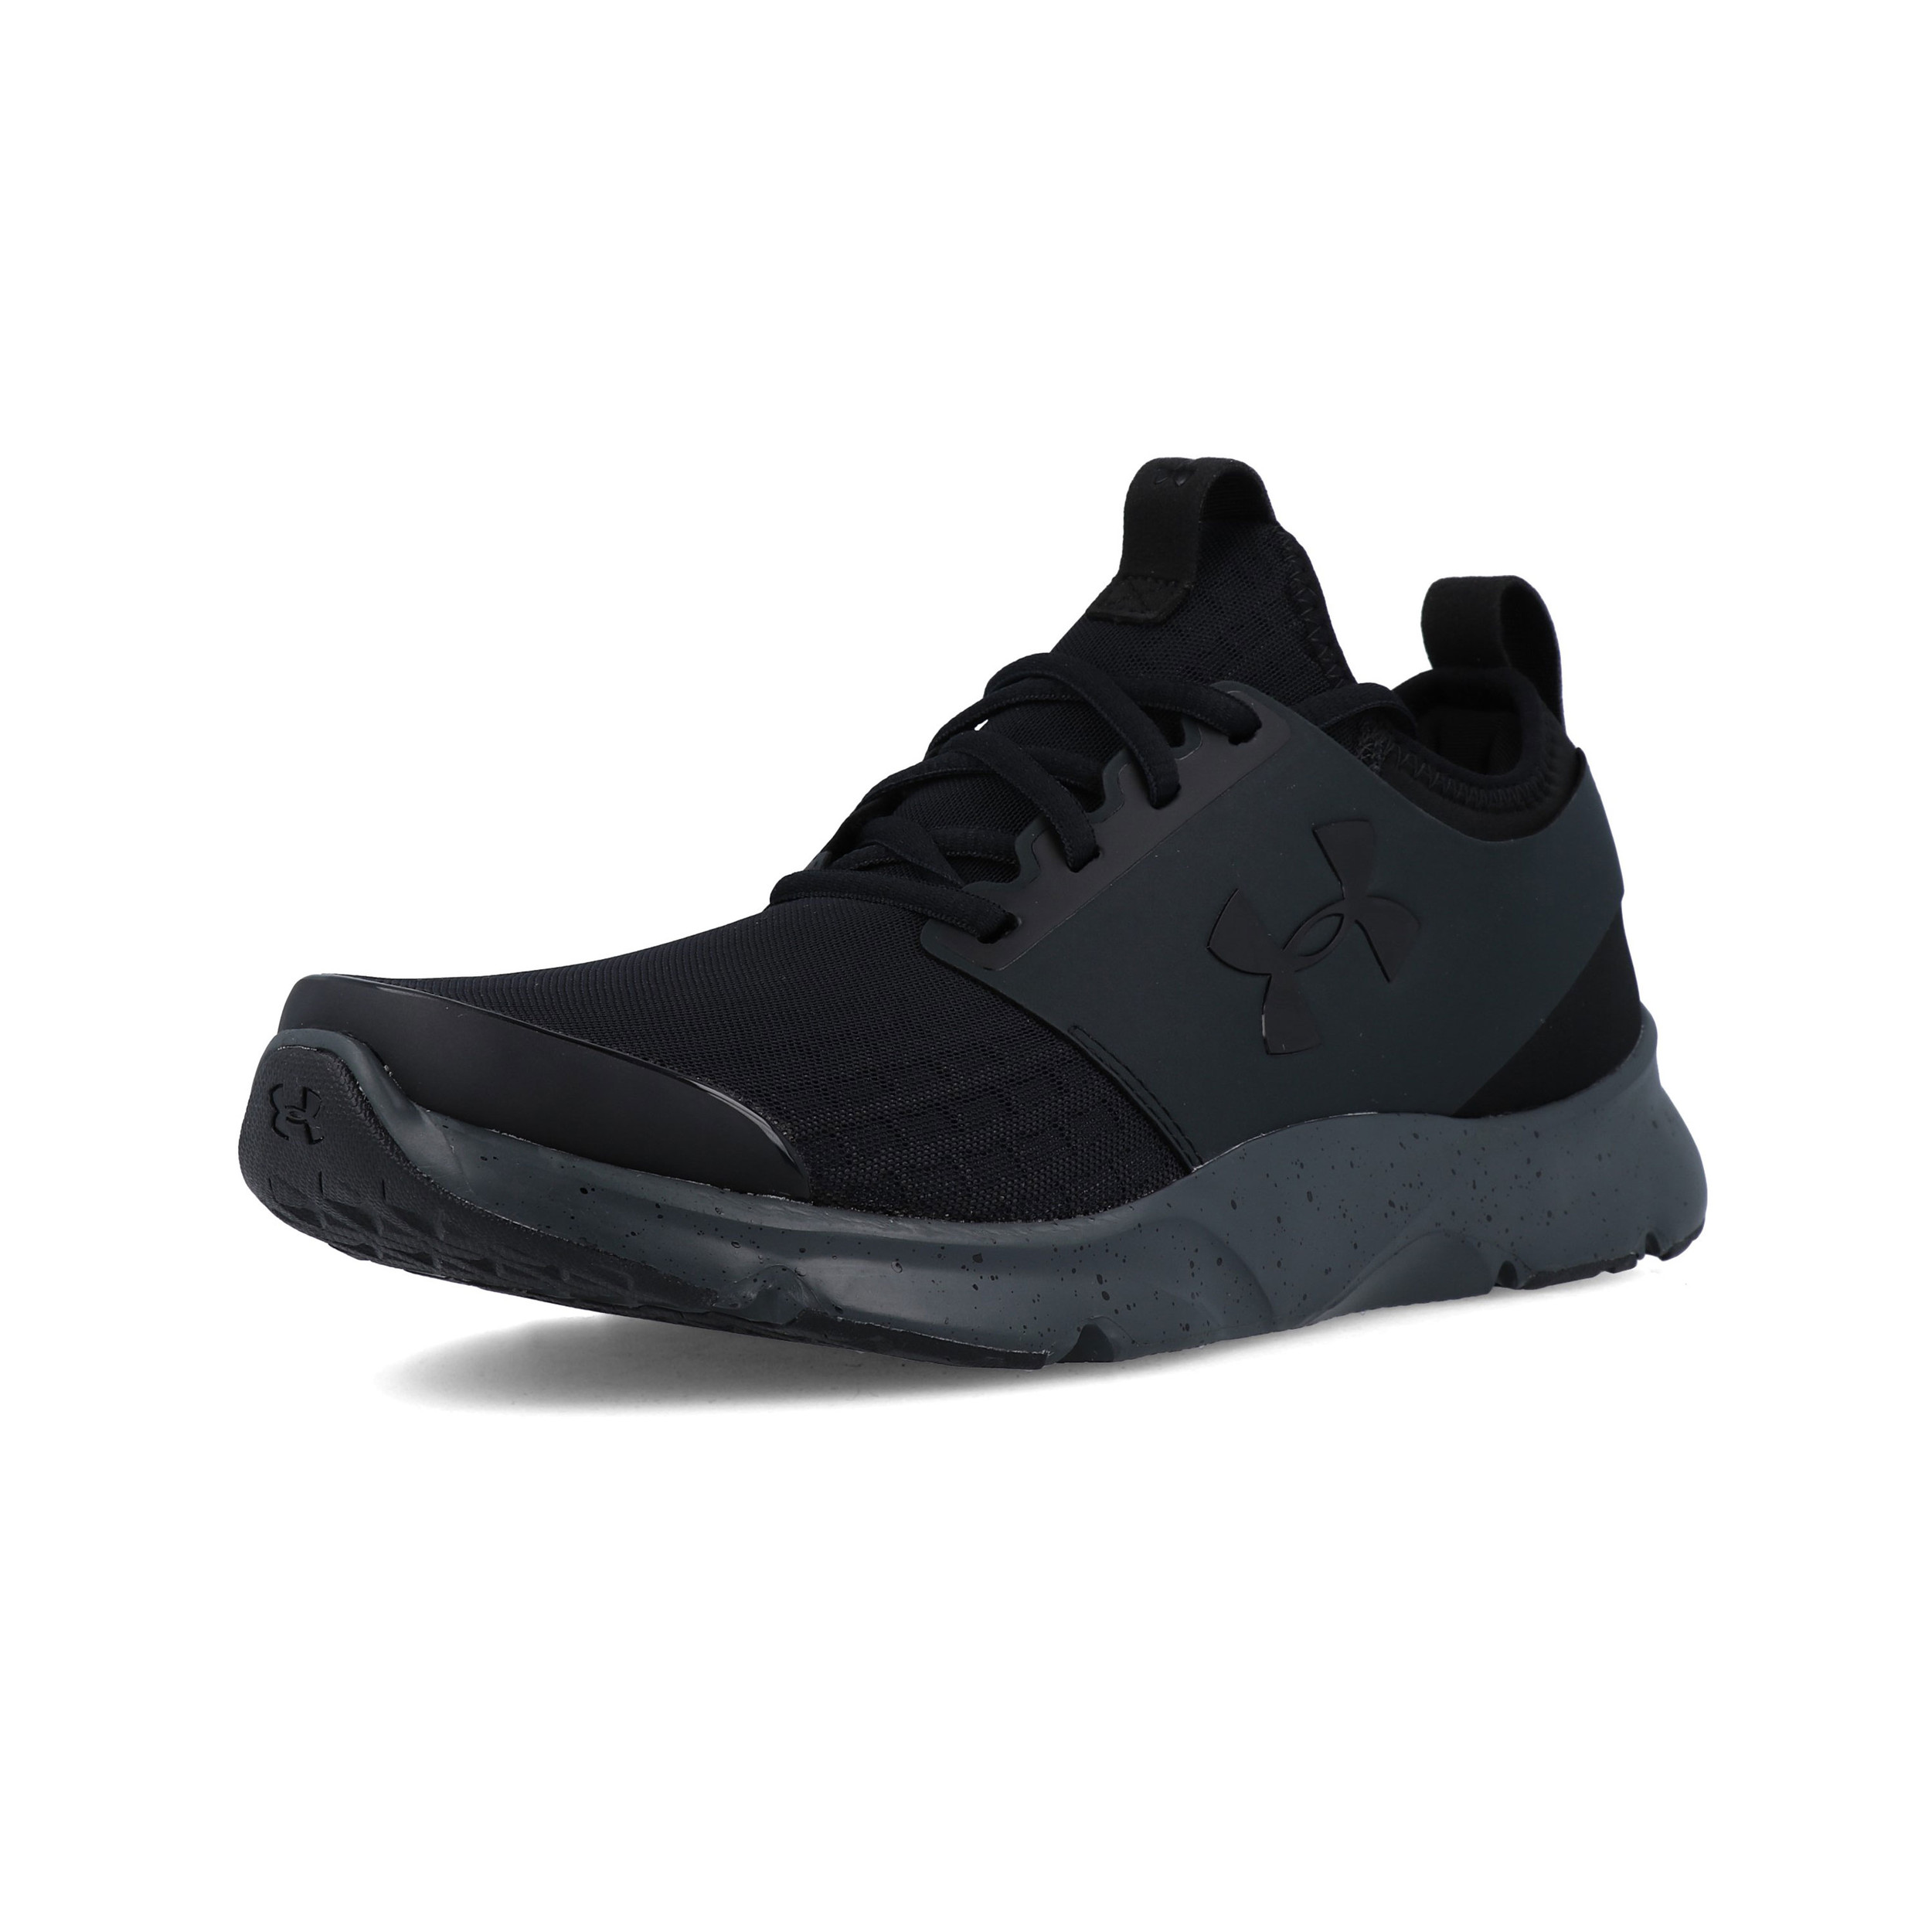 Armour-Para-Hombre-Negro-Drift-correr-Under-Shoes-Trainers-Deportes-Transpirable miniatura 4